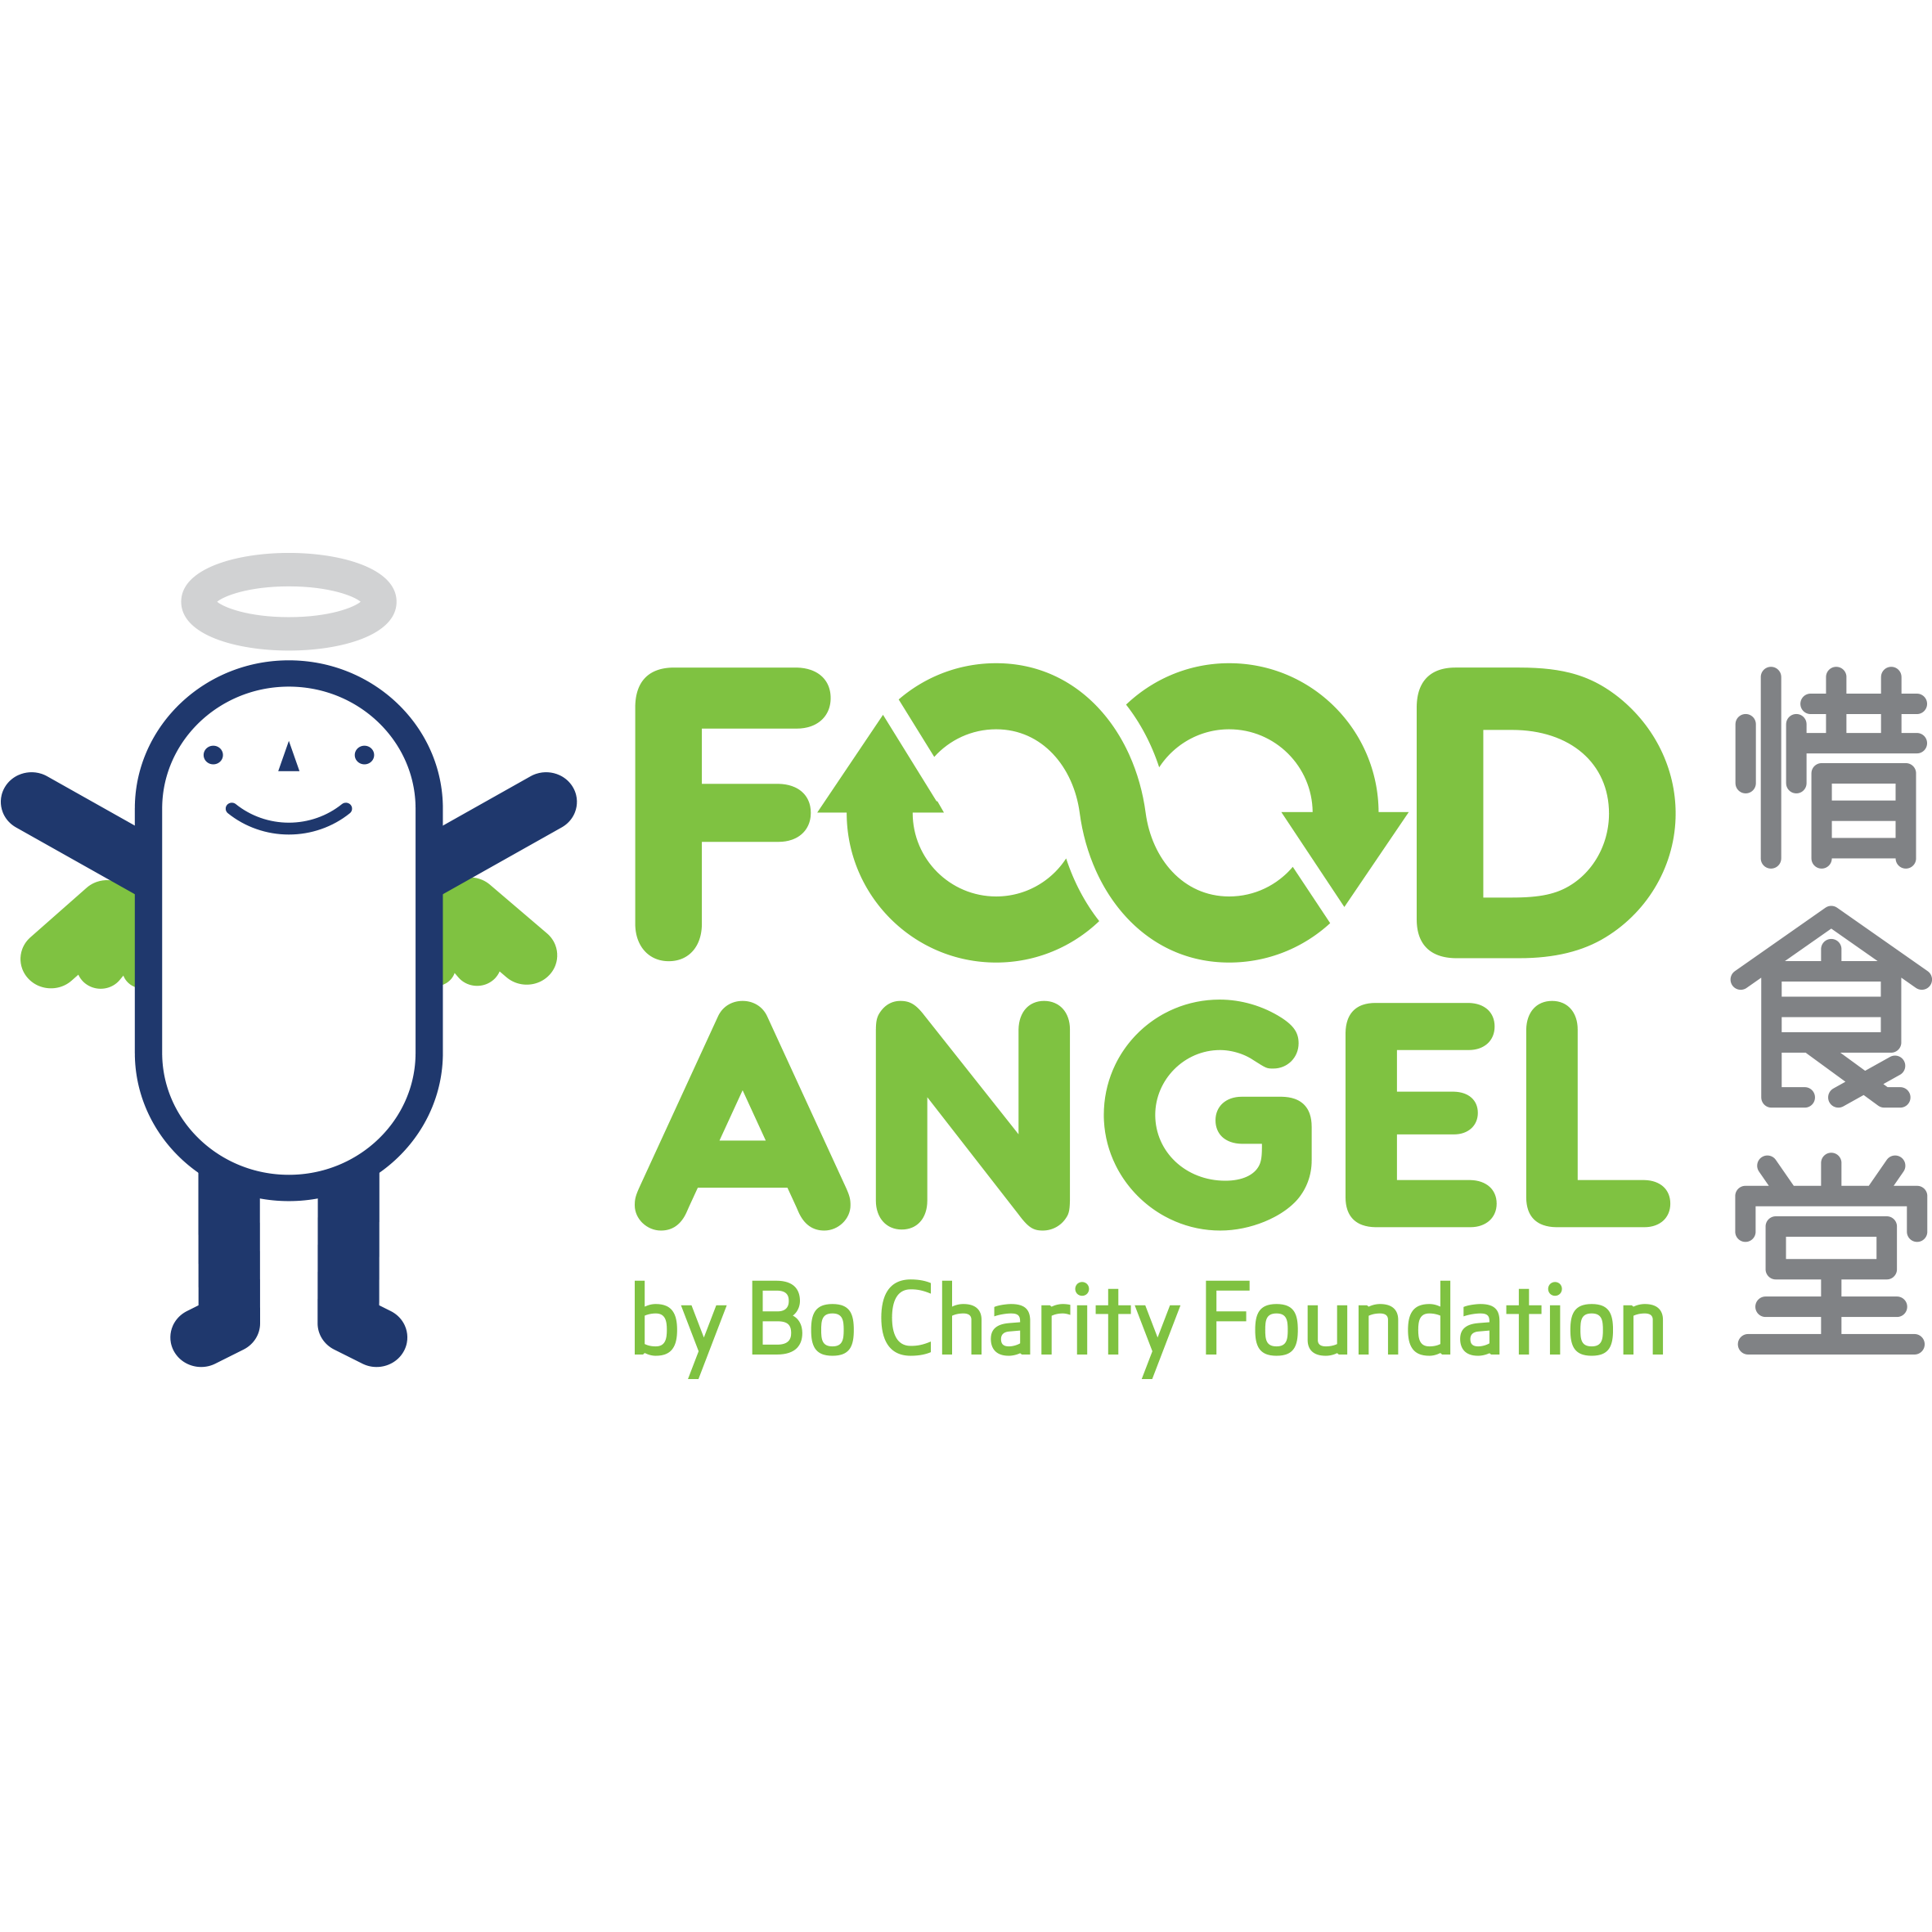 Food Angel